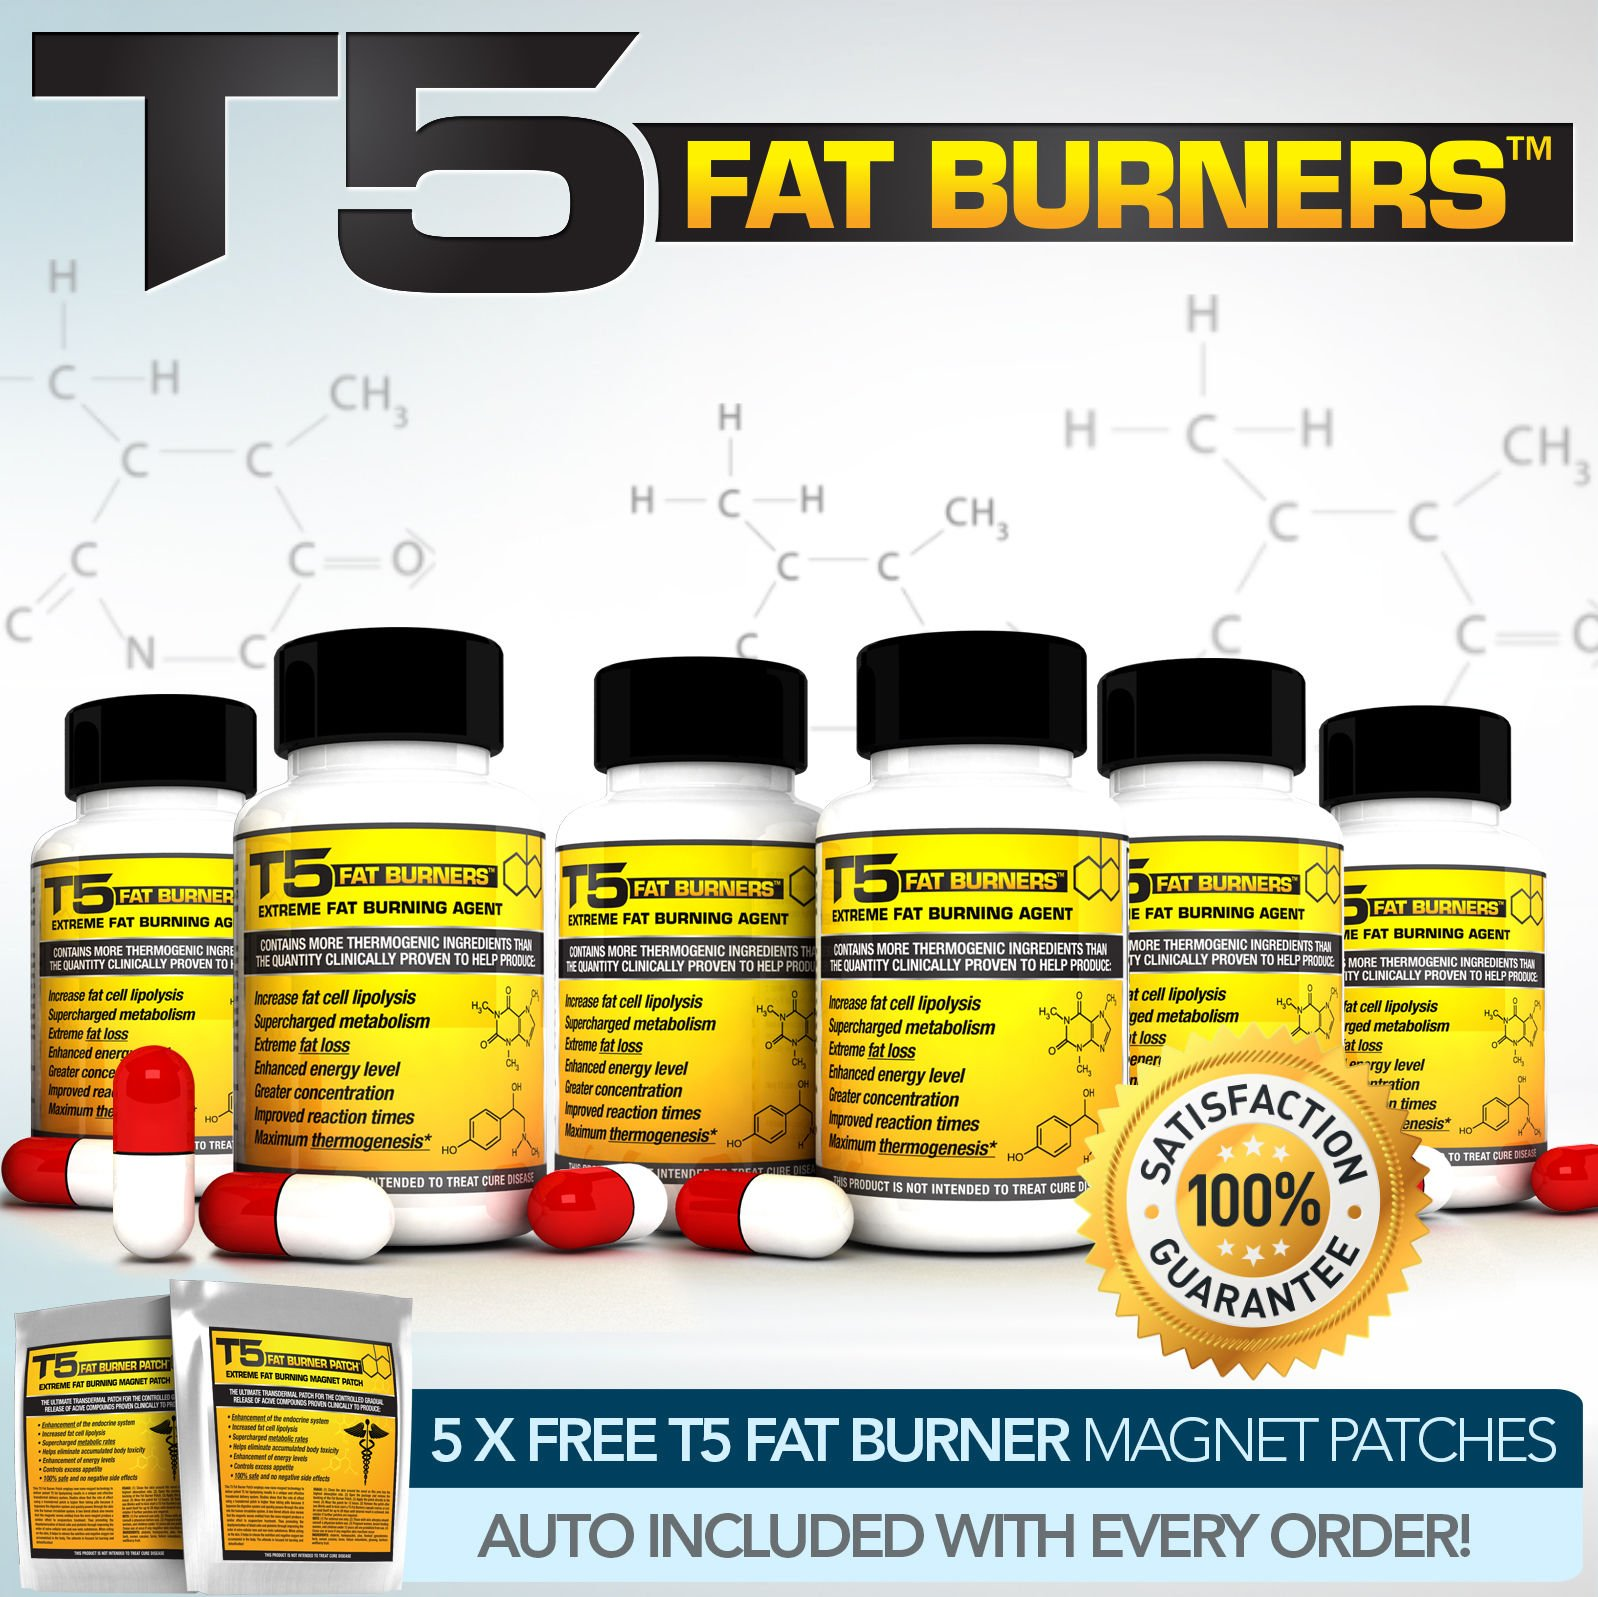 X6 T5 FAT Burners - Worlds Strongest Legal Slimming Tablets / Diet & Weight Loss Slender Product